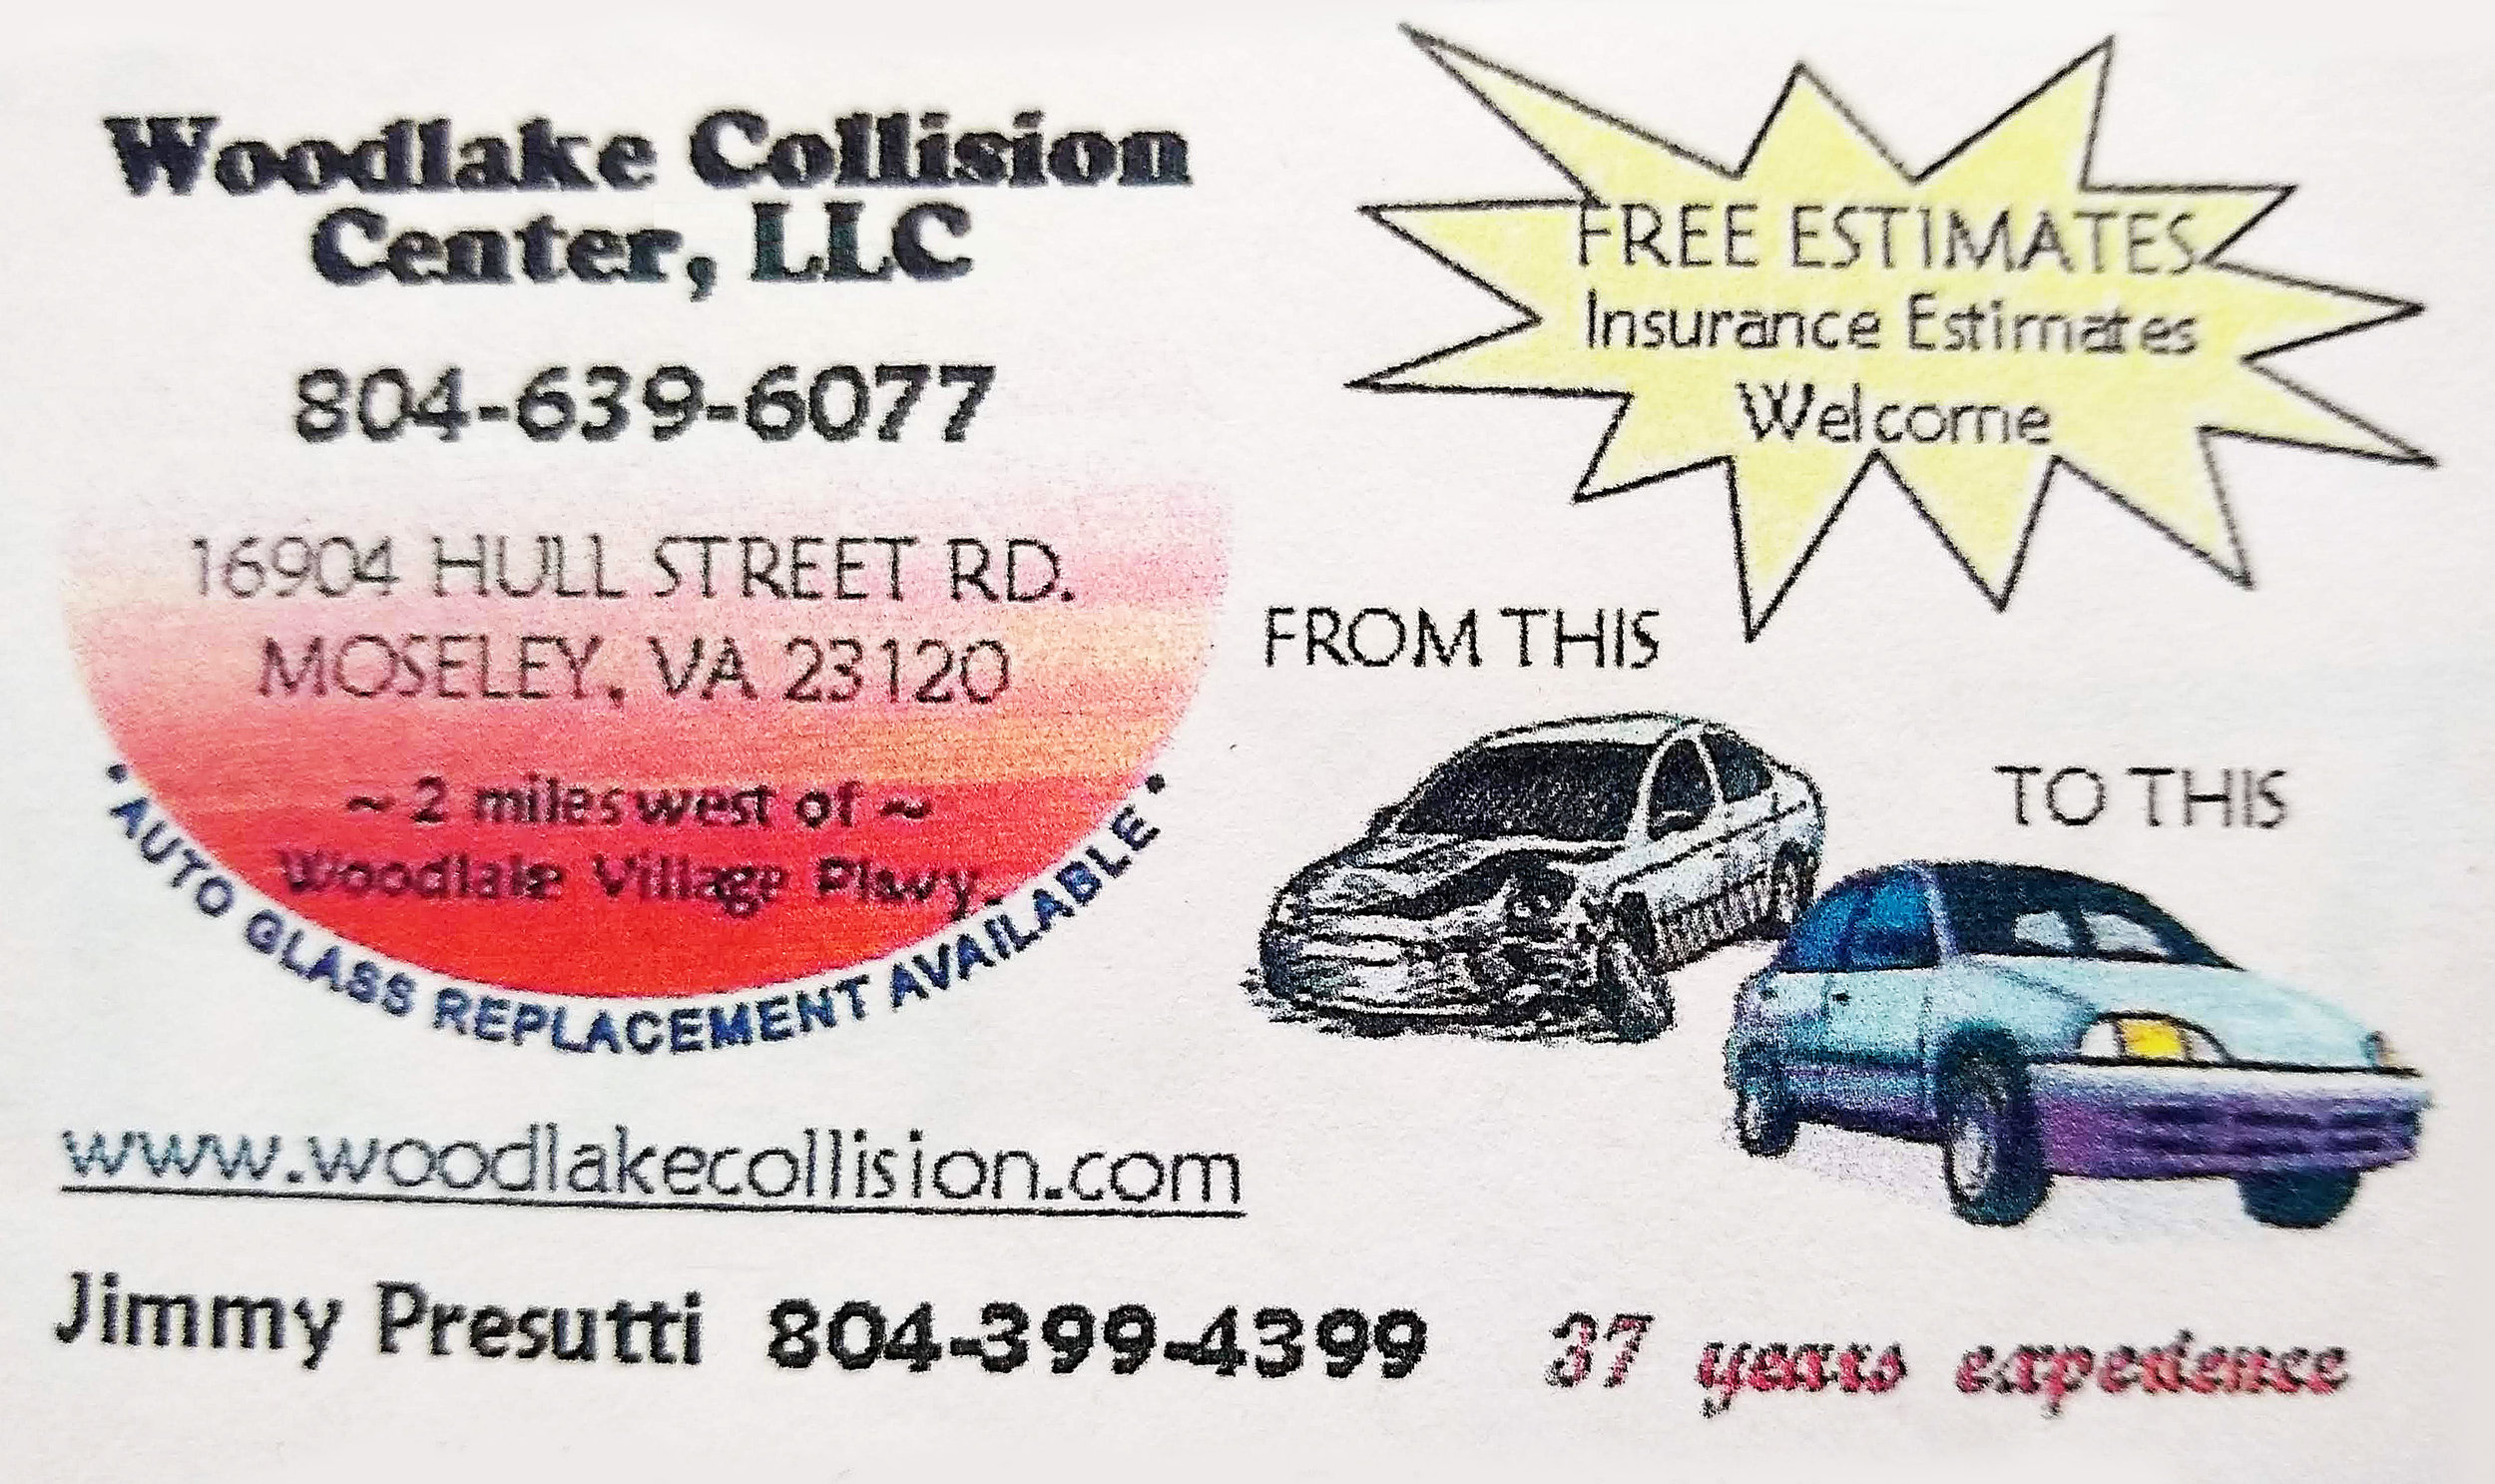 Woodlake Collision Center, LLC   Jimmy Presutti  16904 Hull Street Rd. Moseley, VA 23120 804-639-6077